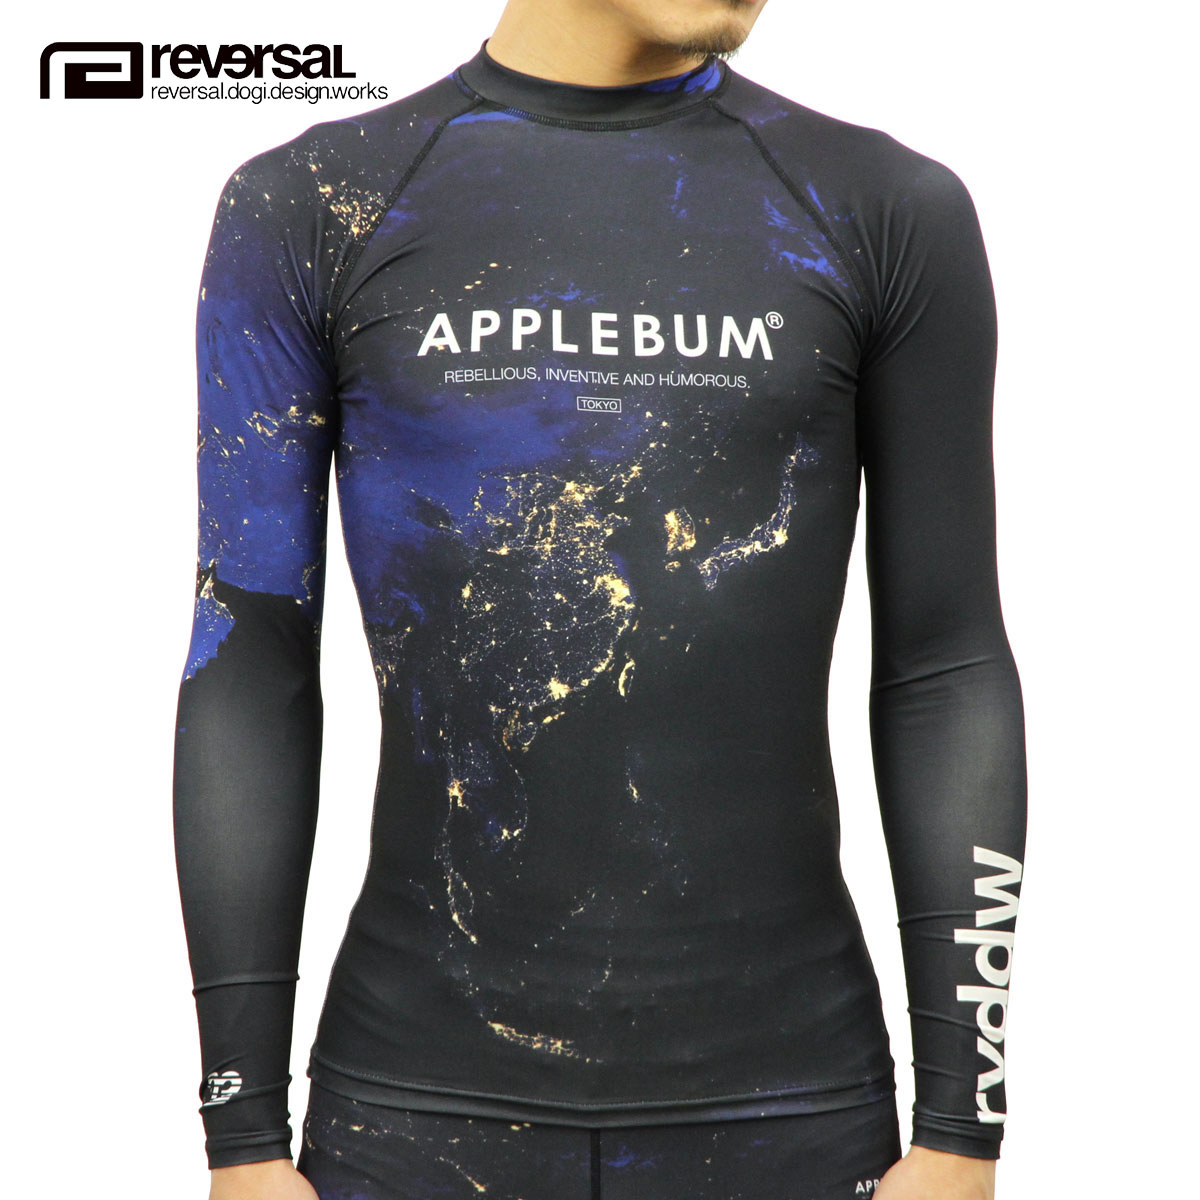 リバーサル REVERSAL 正規販売店 メンズ ラッシュガード APPLEBUM X RVDDW NIGHT EARTH RASH GUARD RVAB001 NIGHT EARTH